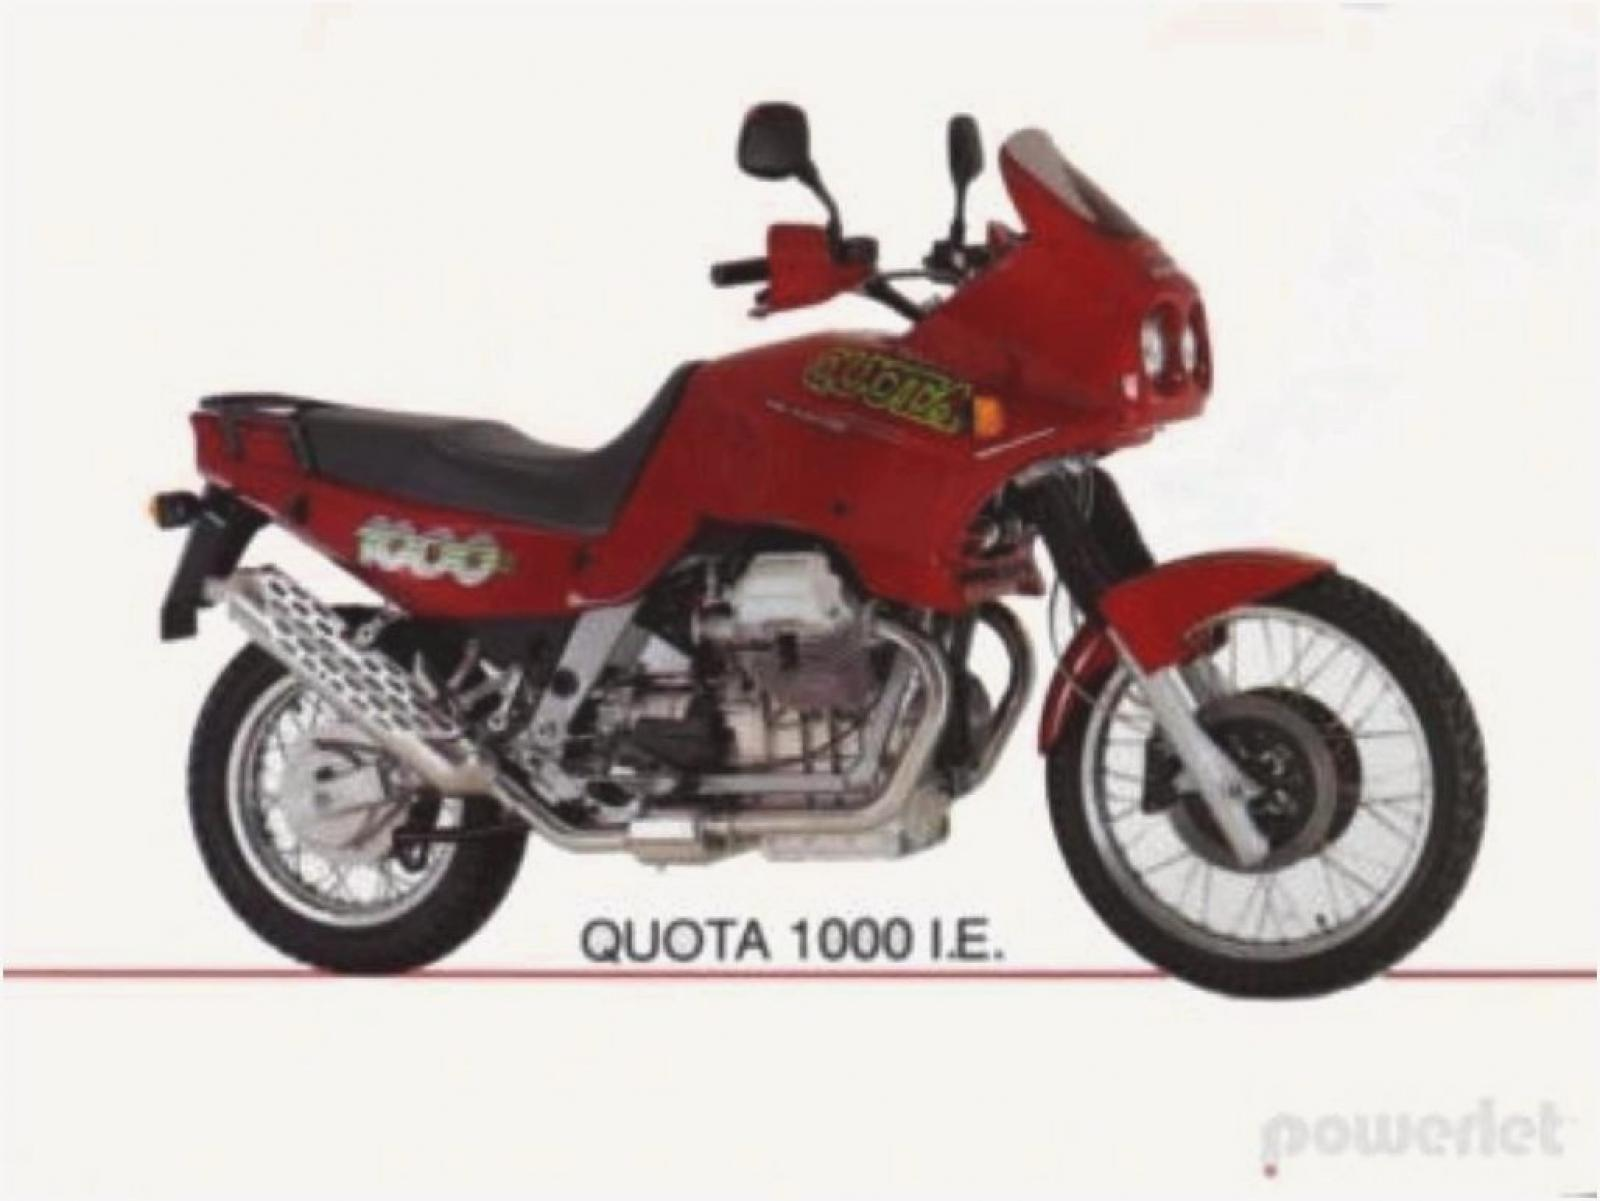 1991 Moto Guzzi 1000 Quota Injection #4